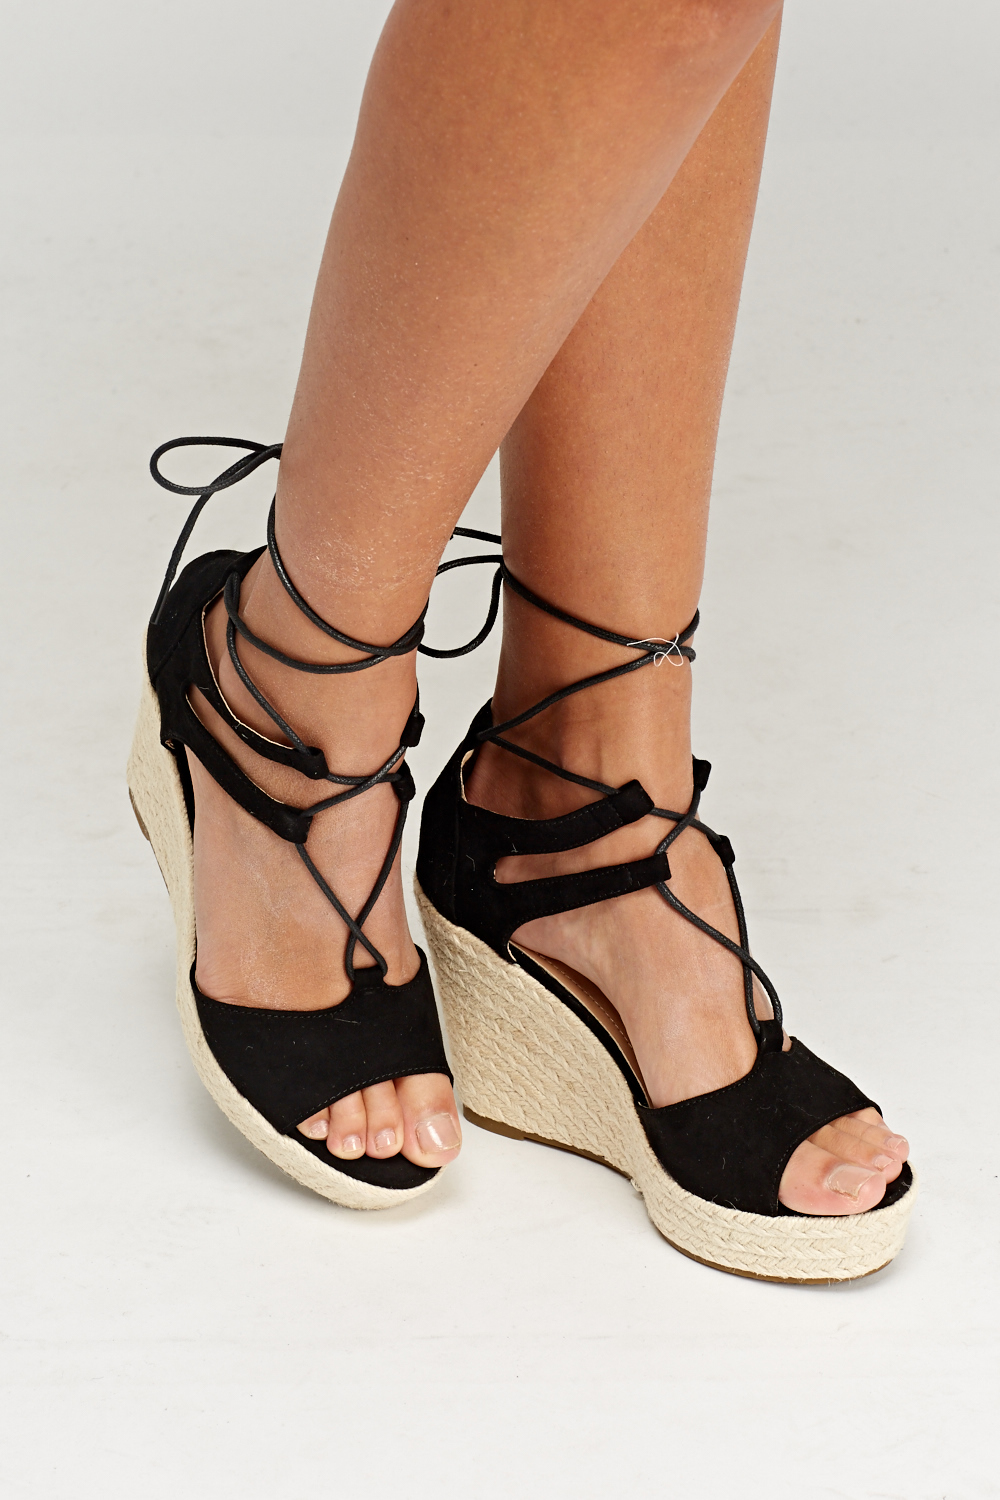 ae55f491393 Lace Up Espadrilles Wedge Sandals - Just £5